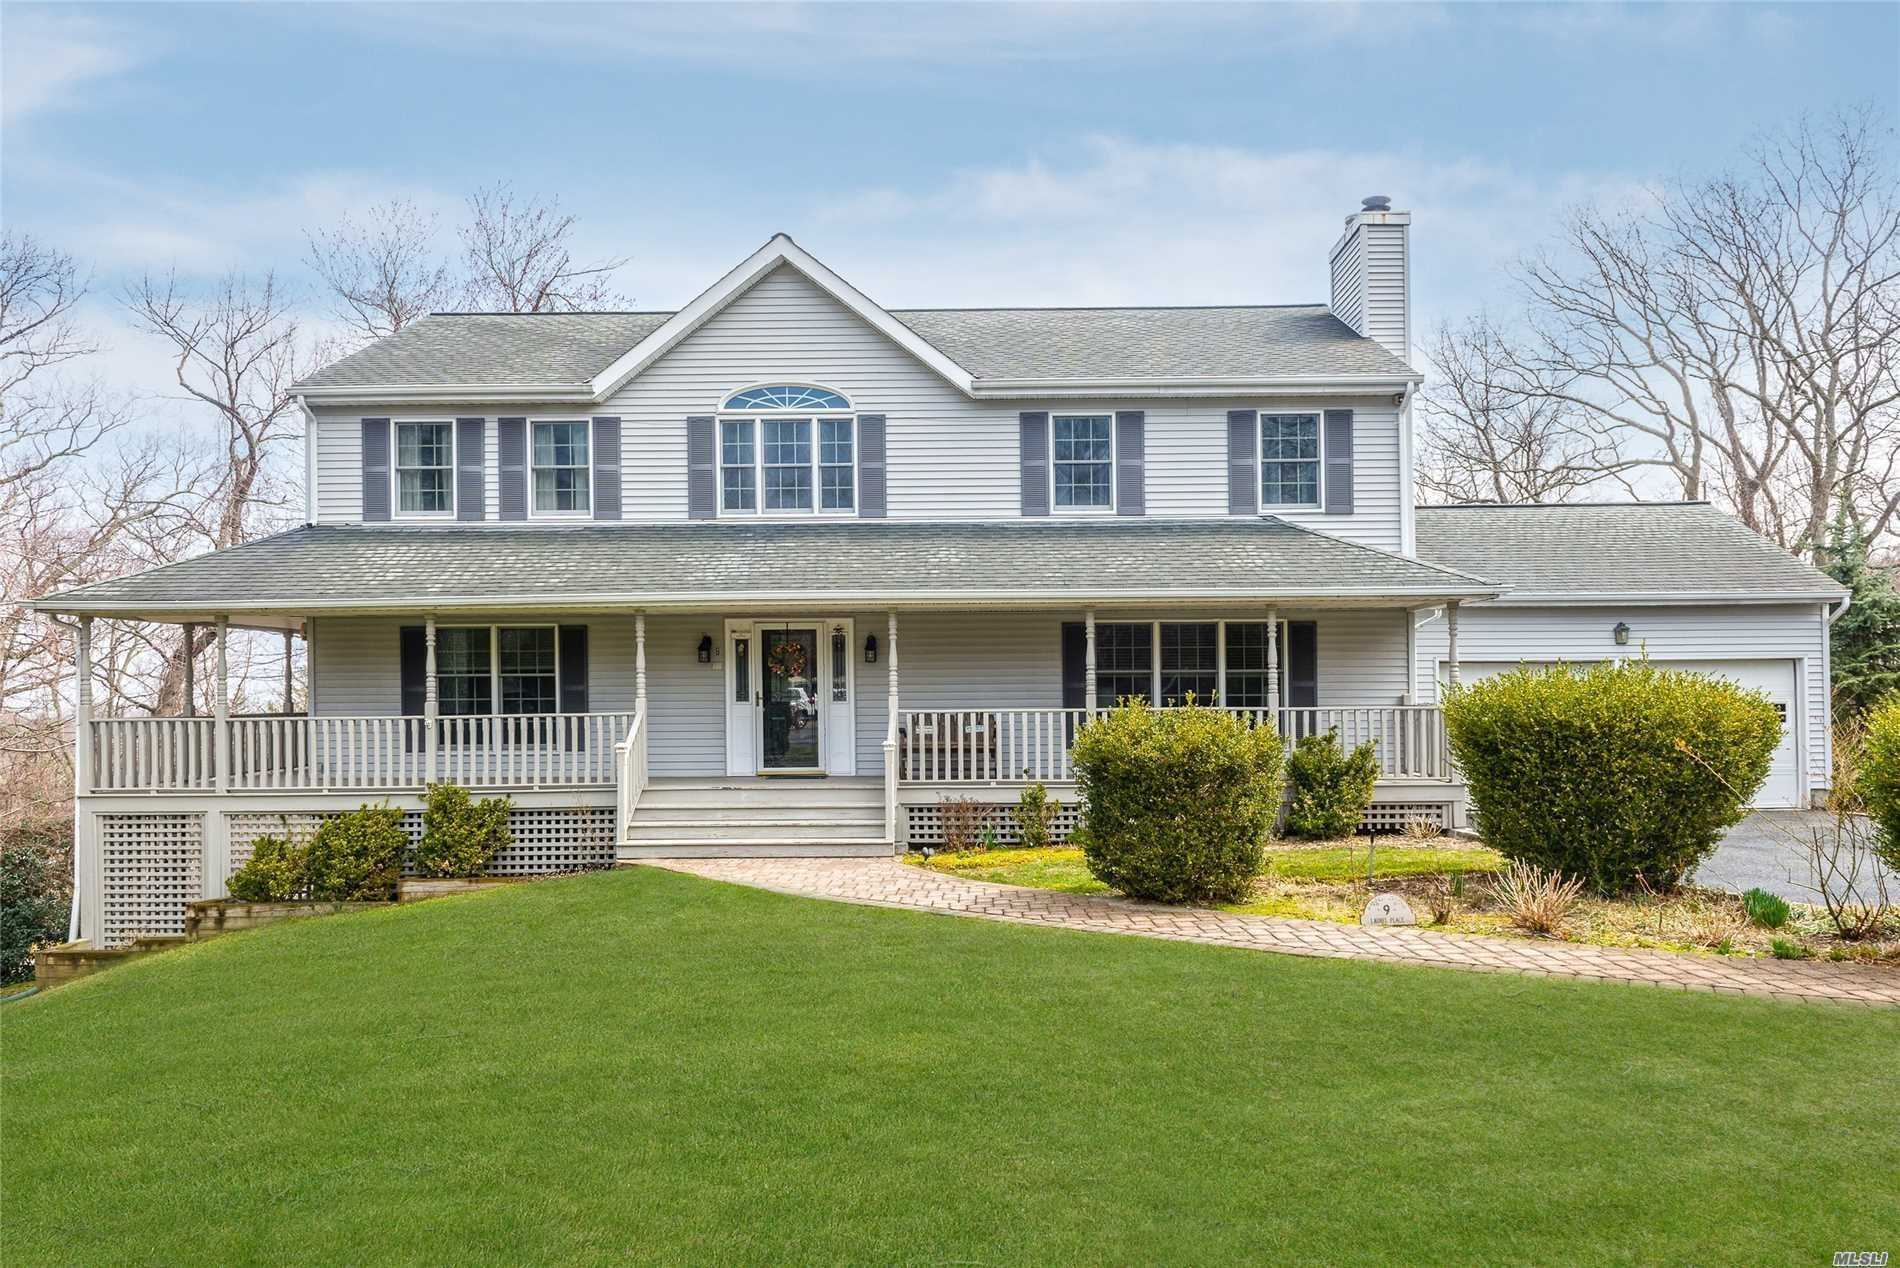 Post Modern 4 Bedroom2.5 Bath Colonial In Quiet Cul De Sac. Wrap Around Porch. Home Offers A Spacious Layout. Large Master Suite & Bath. Family Rm W/Frplc. Walk Out Finished Basement. Winter Water Views.